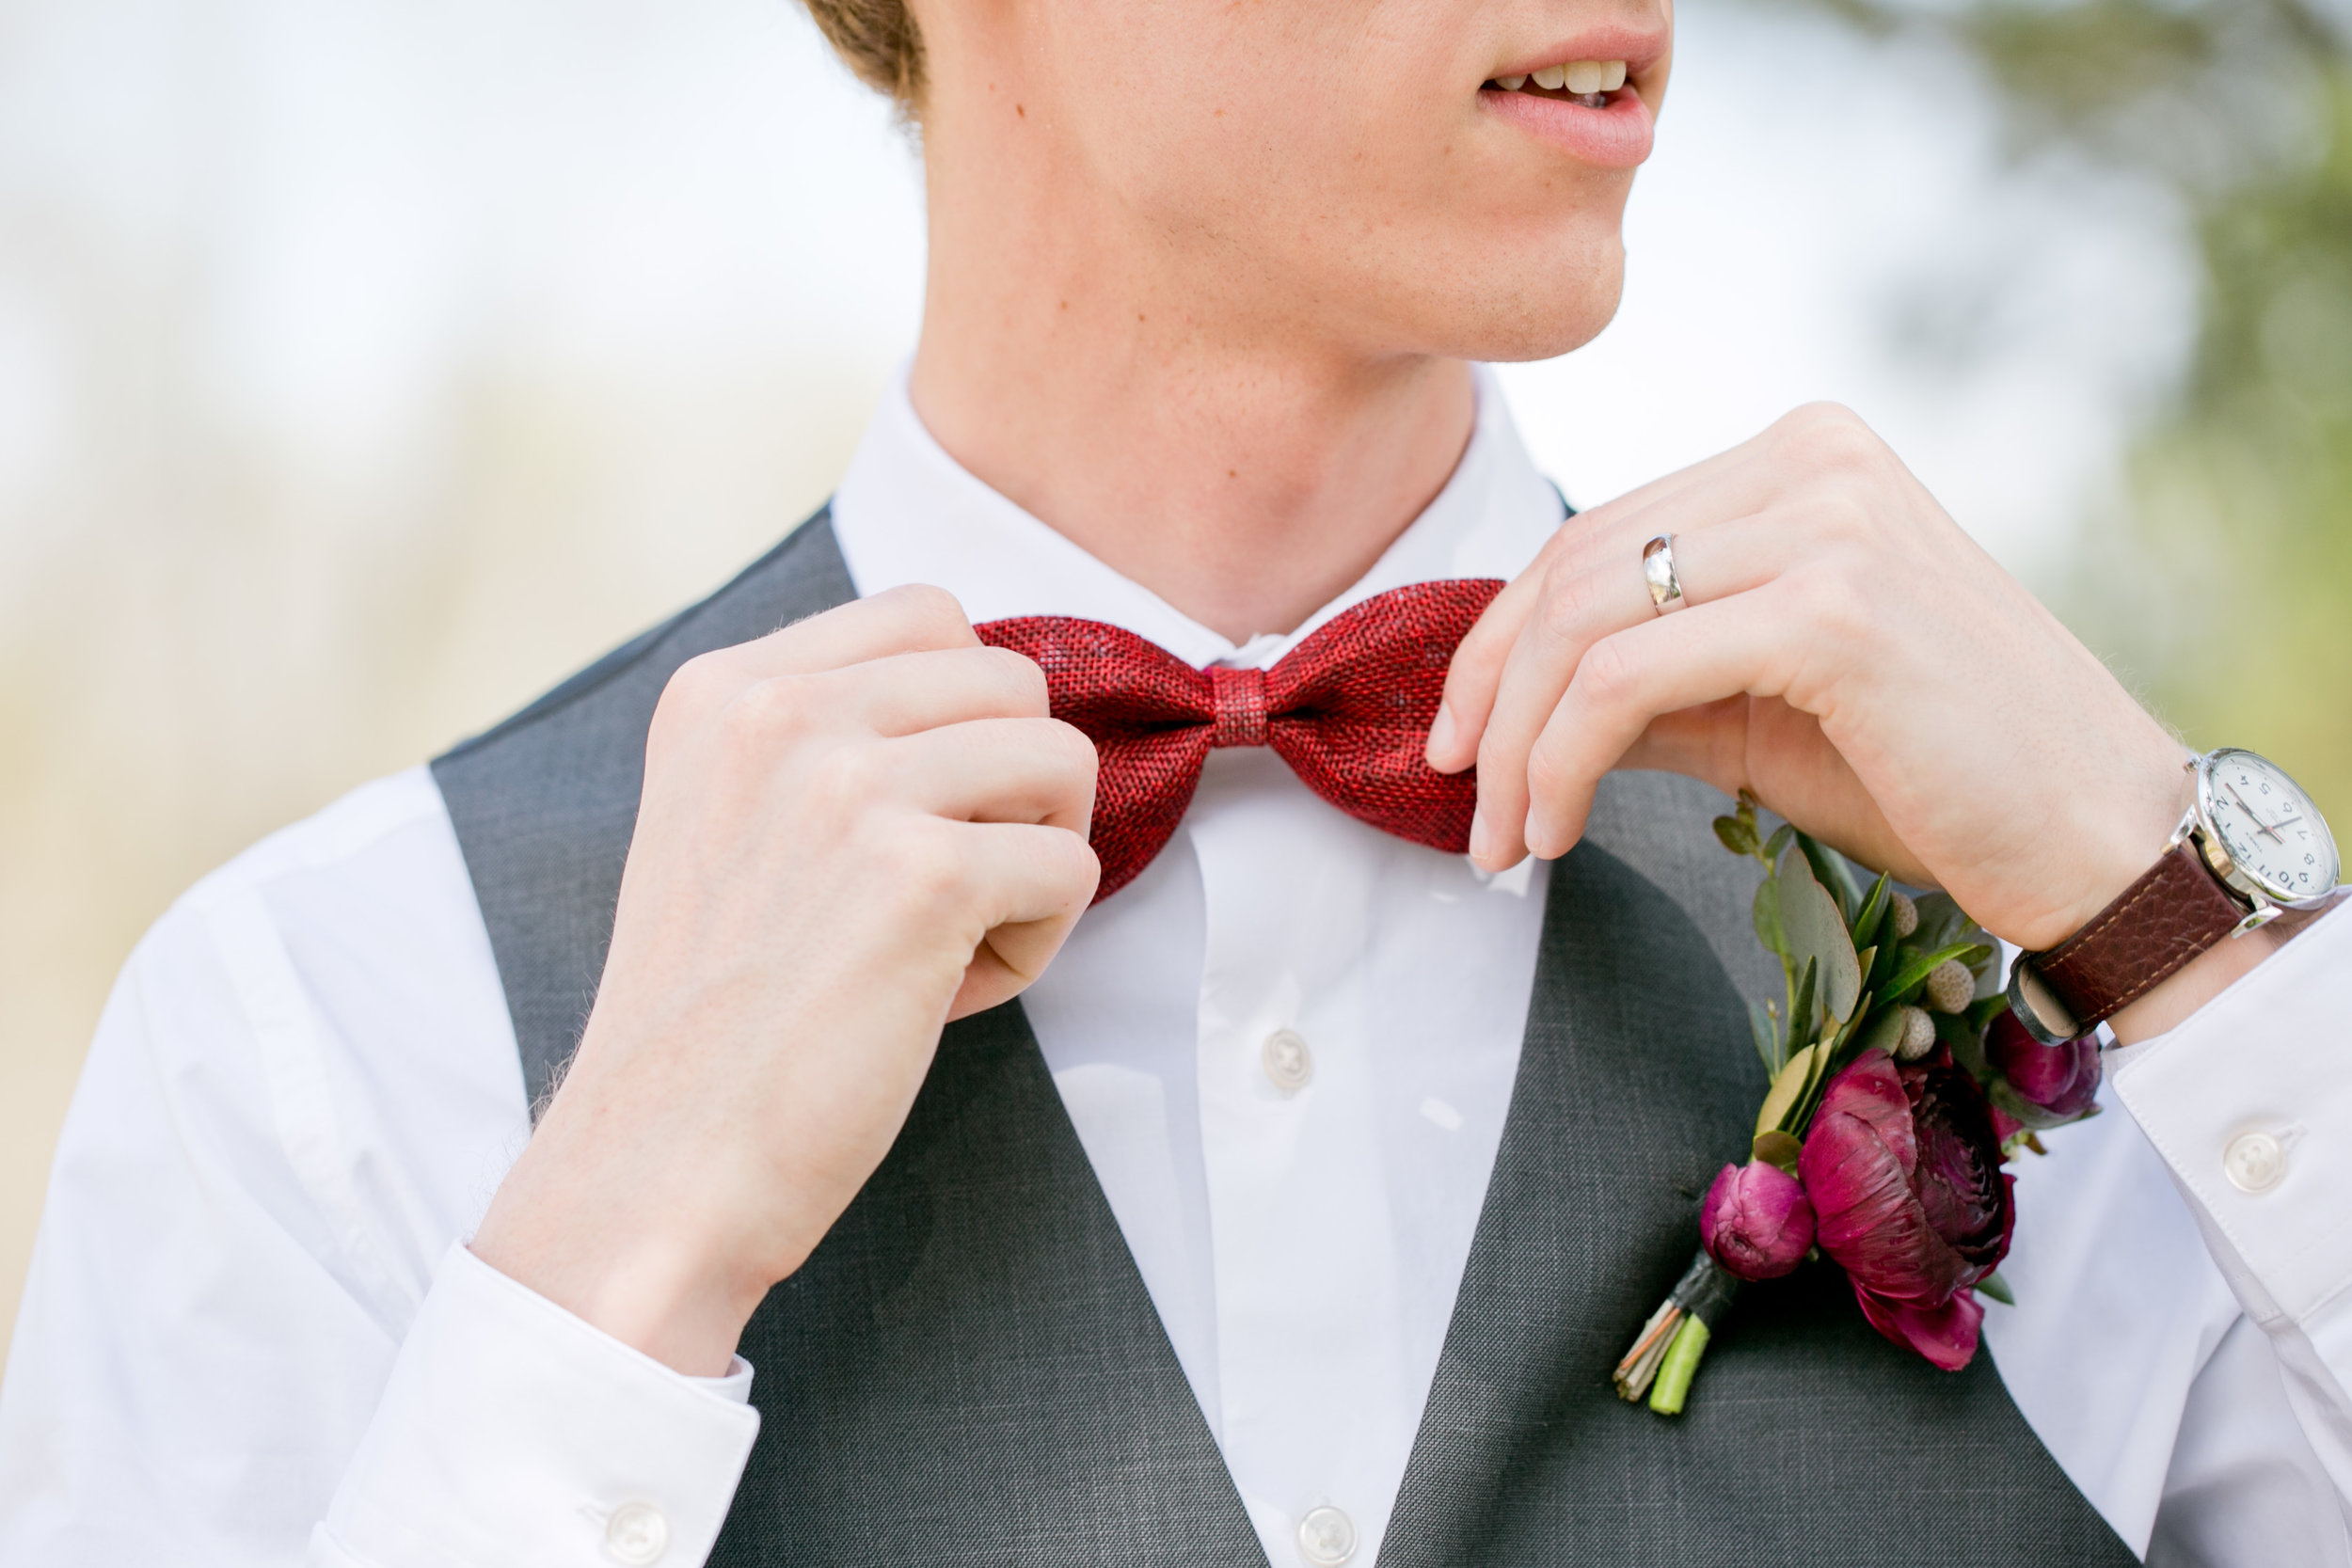 des moines iowa wedding photos red bowtie and watch on groom